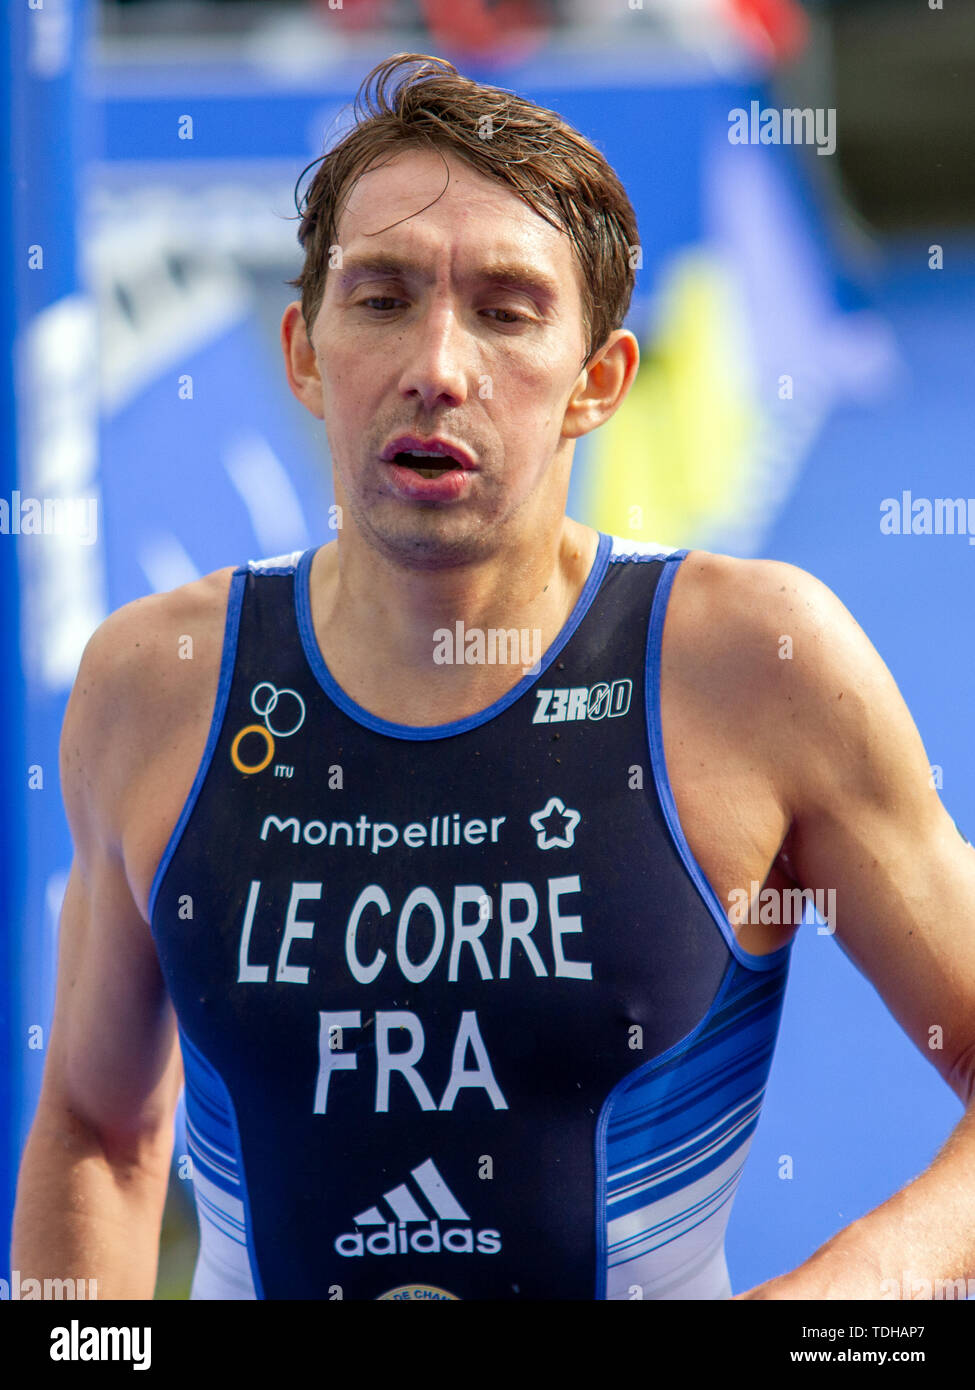 Nottingham, UK. 15th June, 2019. Pierre Le Corre of France seen during the 2019 Accenture World Triathlon Mixed Relay (Duathlon) in Nottingham. Credit: SOPA Images Limited/Alamy Live News - Stock Image